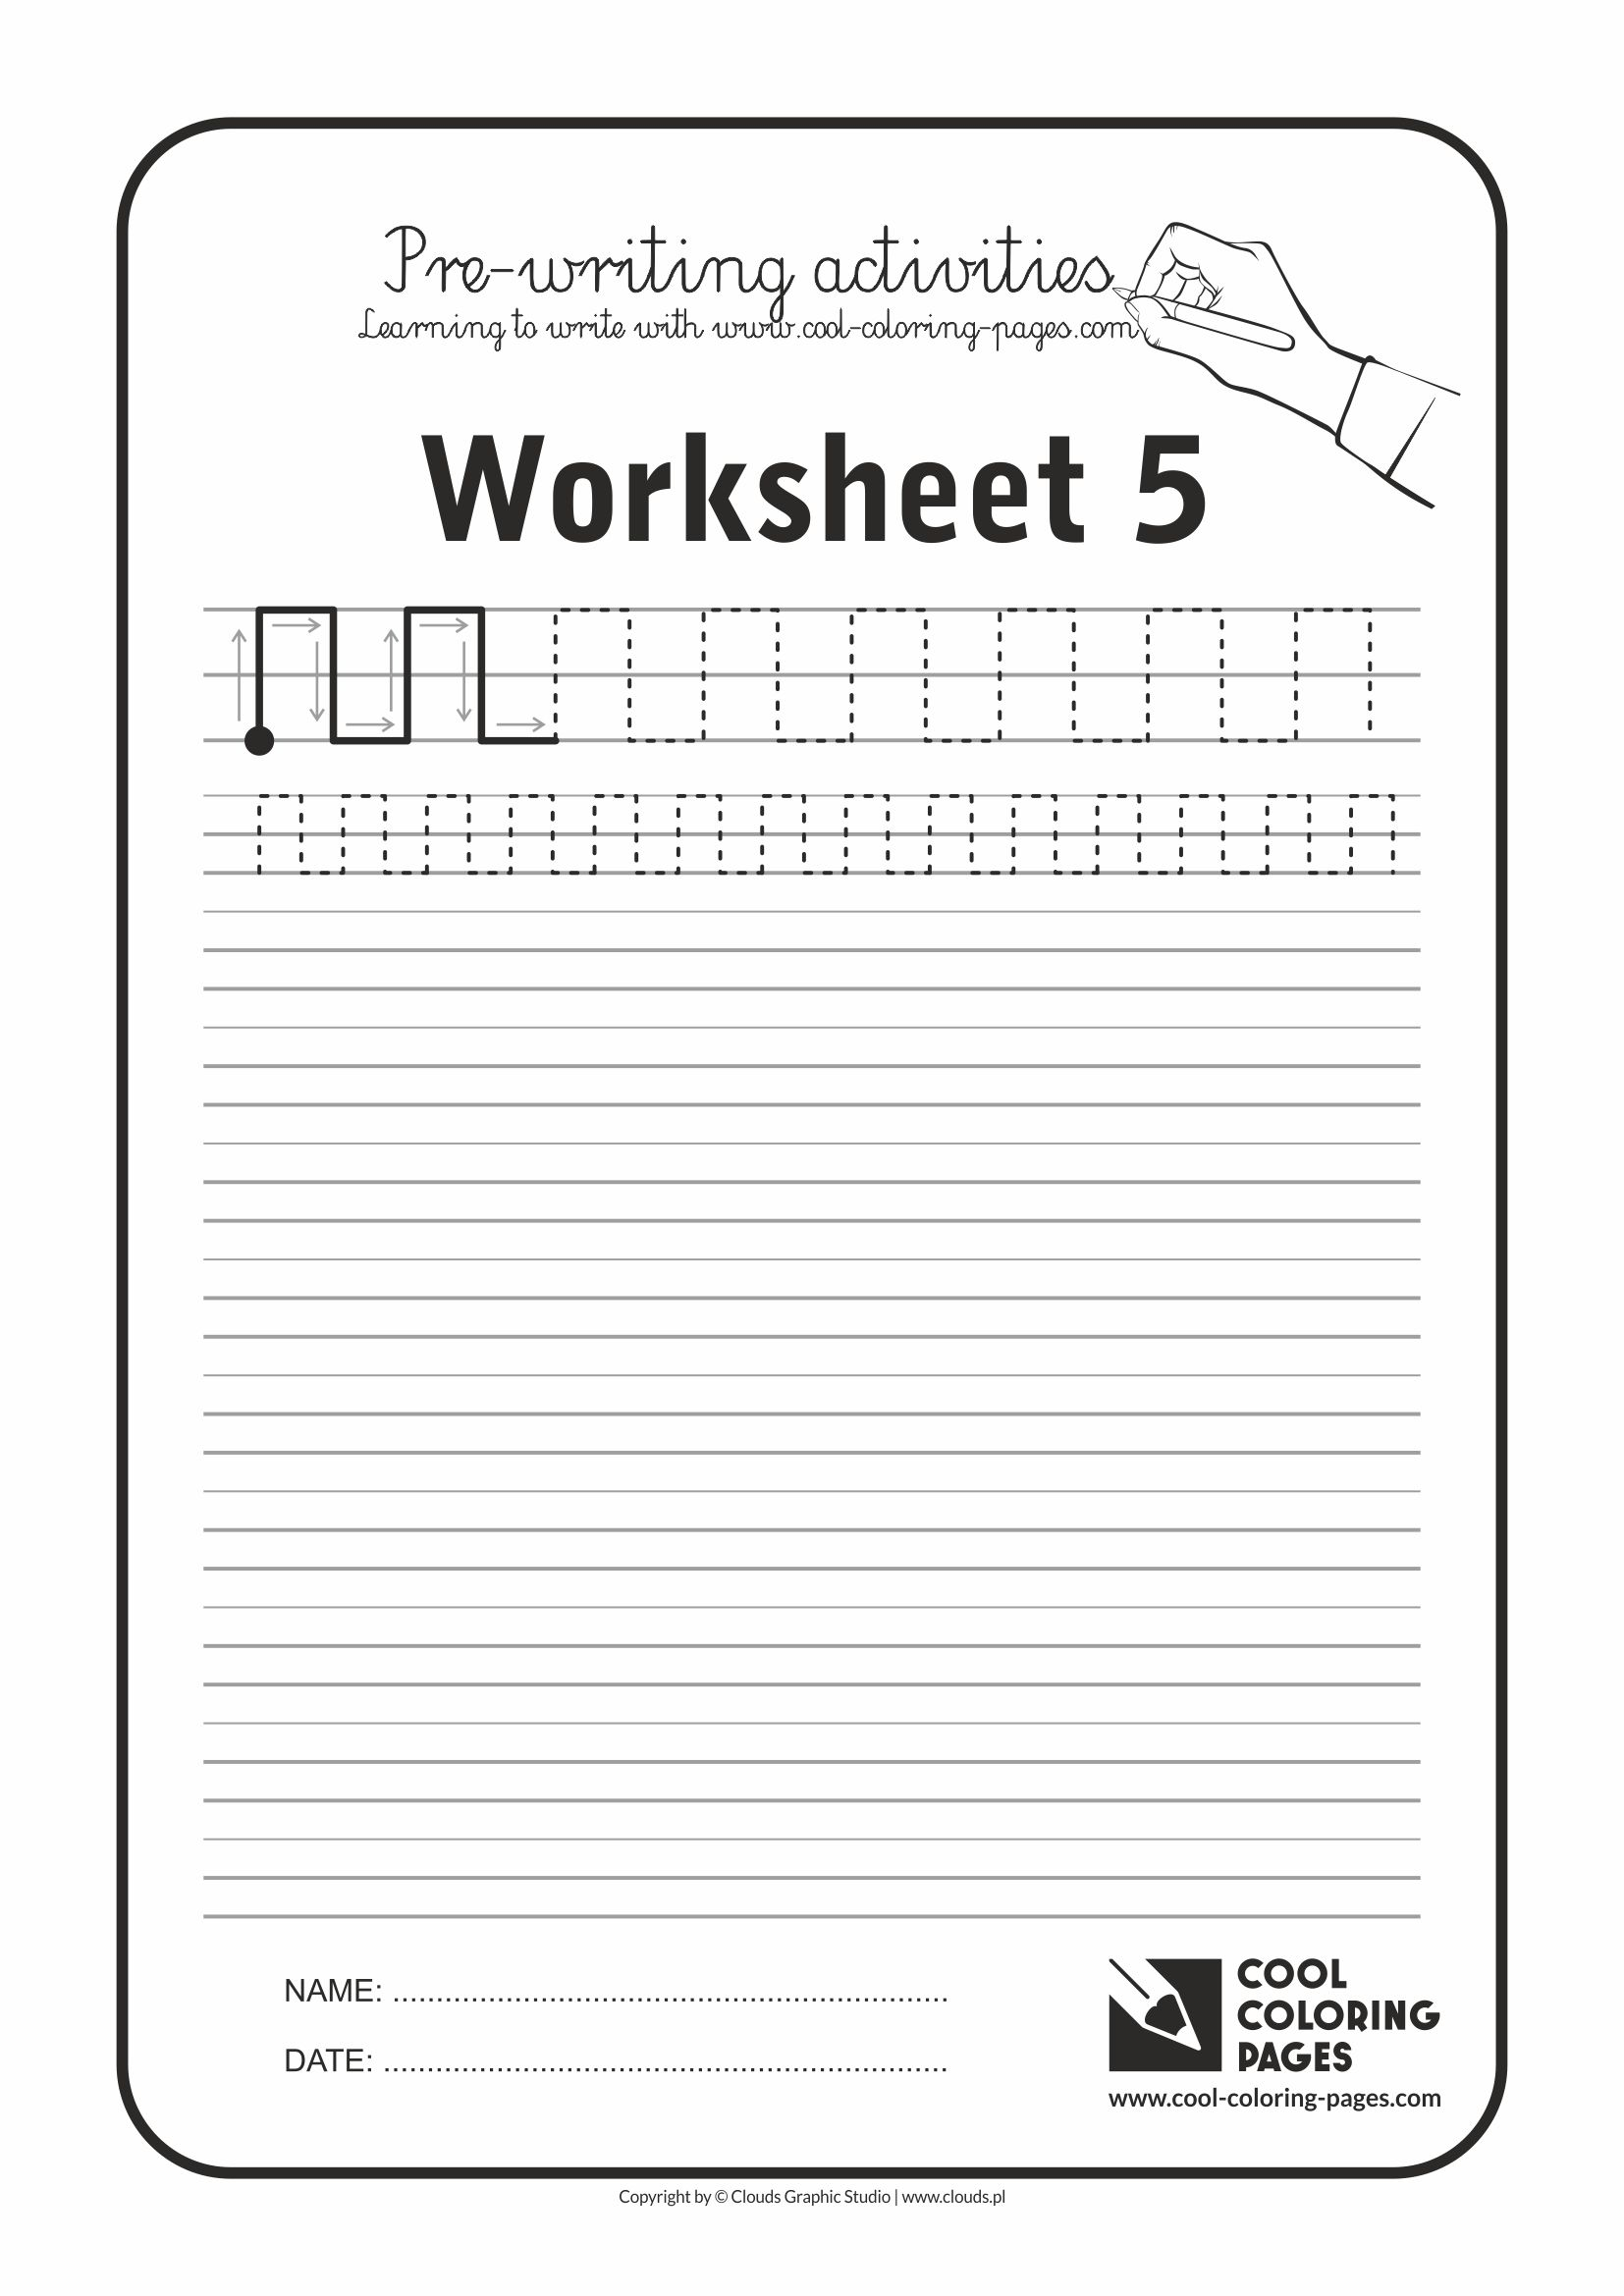 Cool Coloring Pages / Pre-writing activities / Worksheet no.5